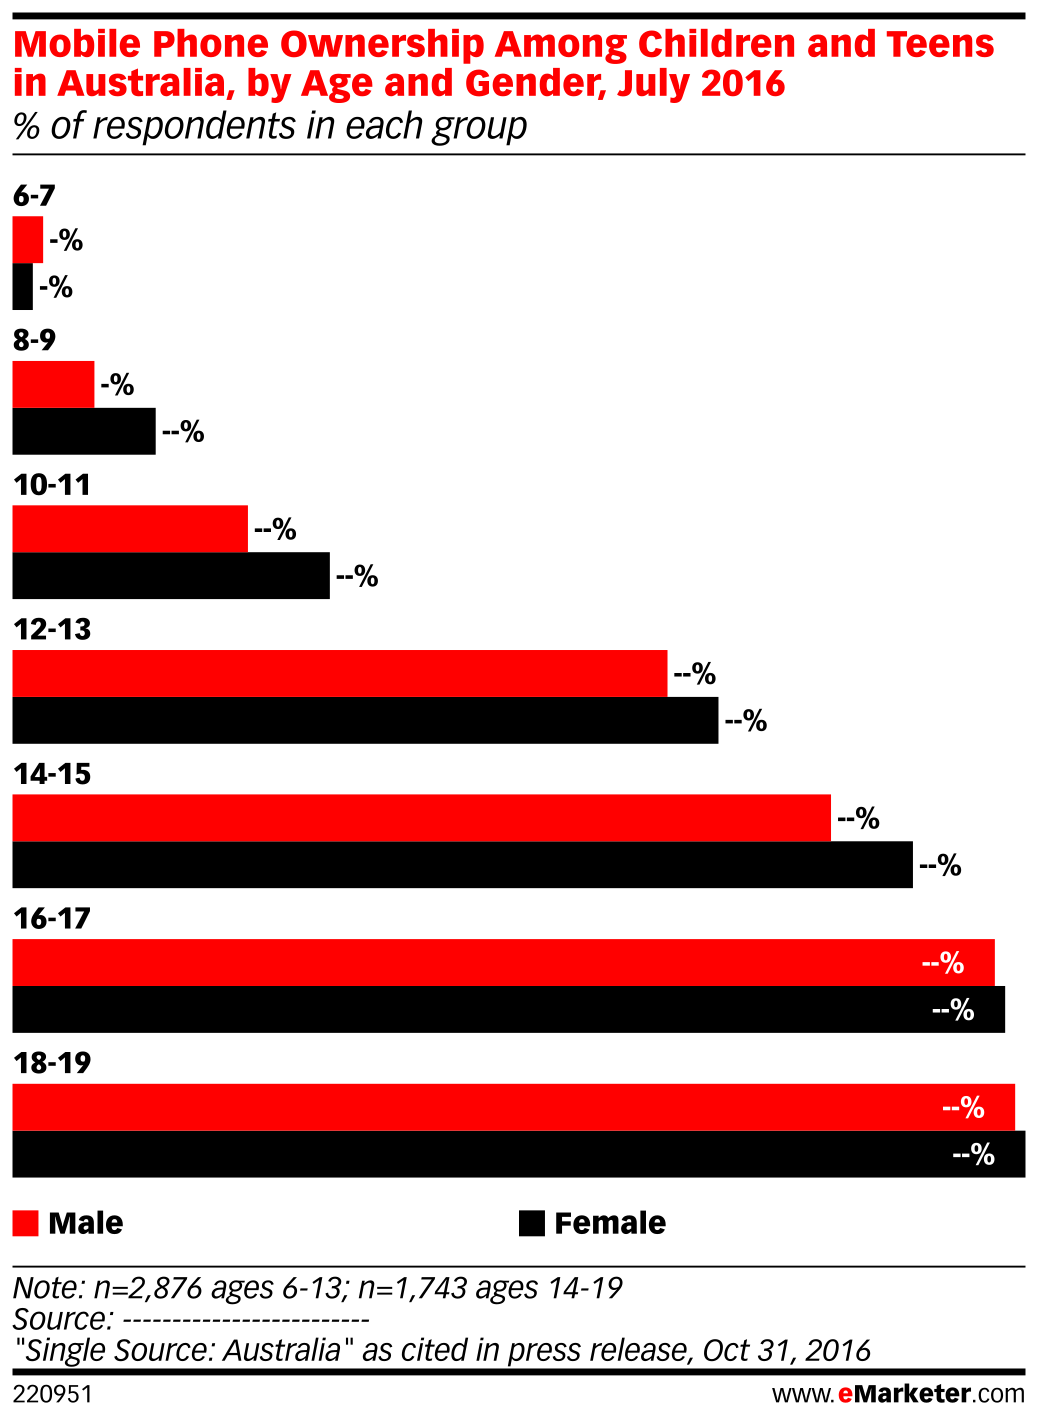 Mobile Phone Ownership Among Children and Teens in Australia, by Age and Gender, July 2016 (% of respondents in each group)